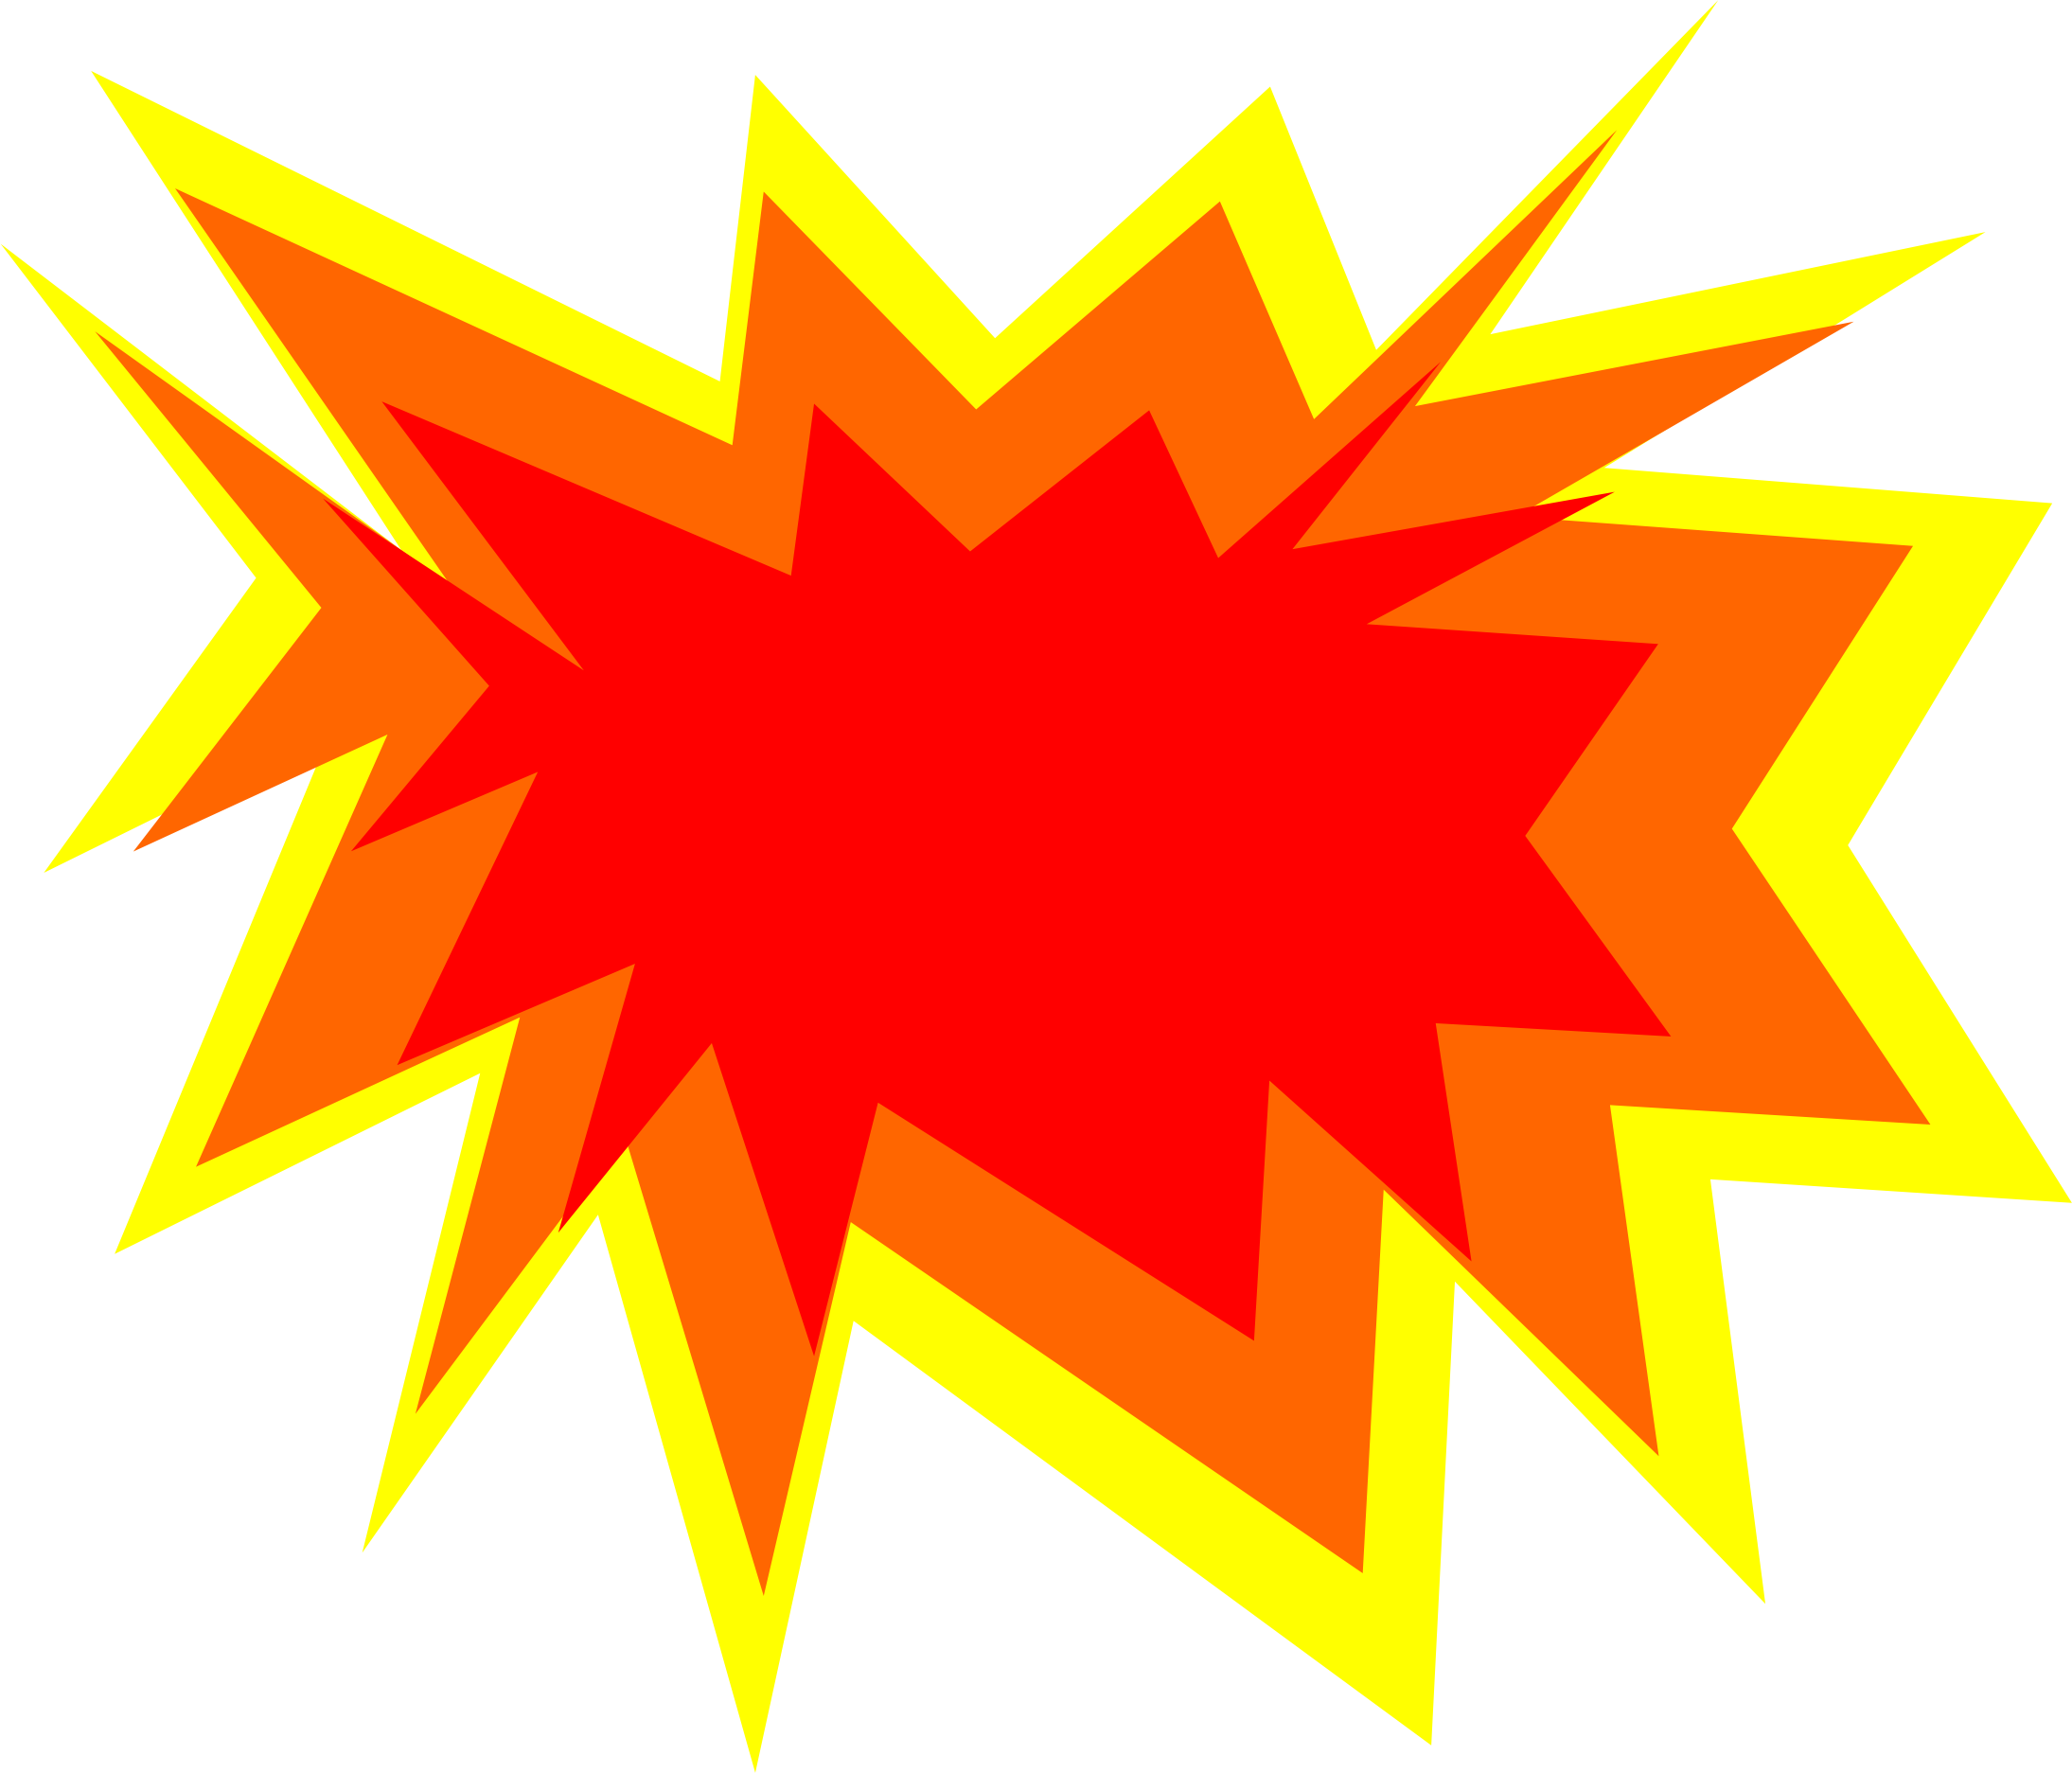 2189x1873 Image For Free Explosion 14 Clip Art Explosion Clip Art Free